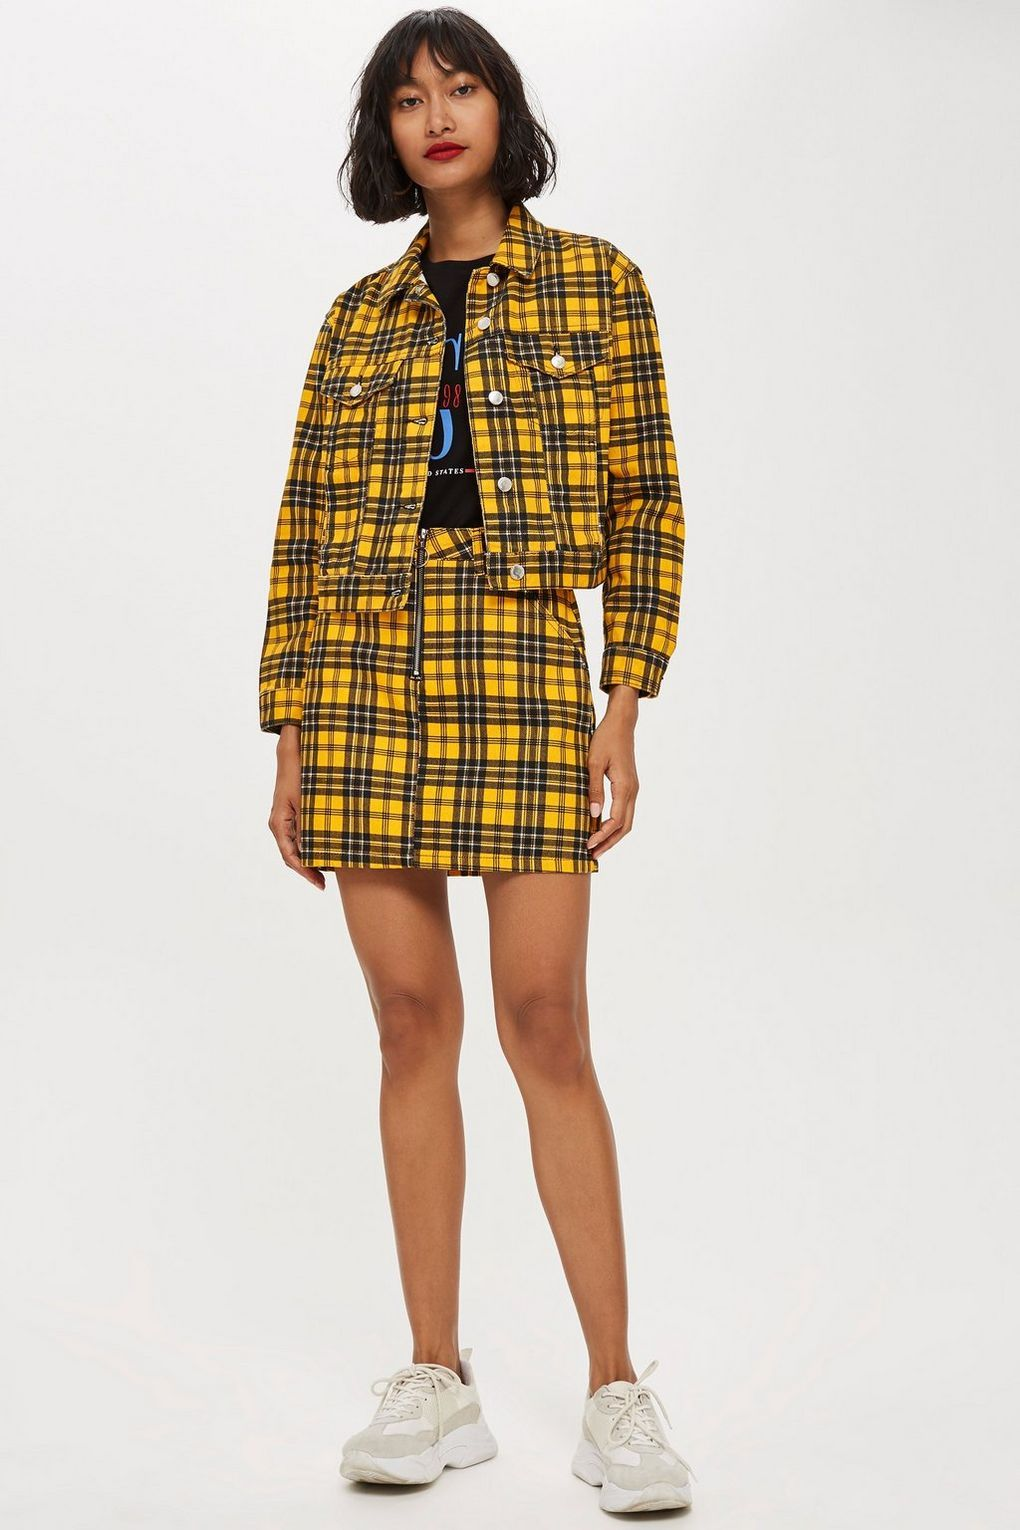 60bfa3c01c Yellow Check Co-ord Set - Suits & Co-ords - Clothing - Topshop USA ...